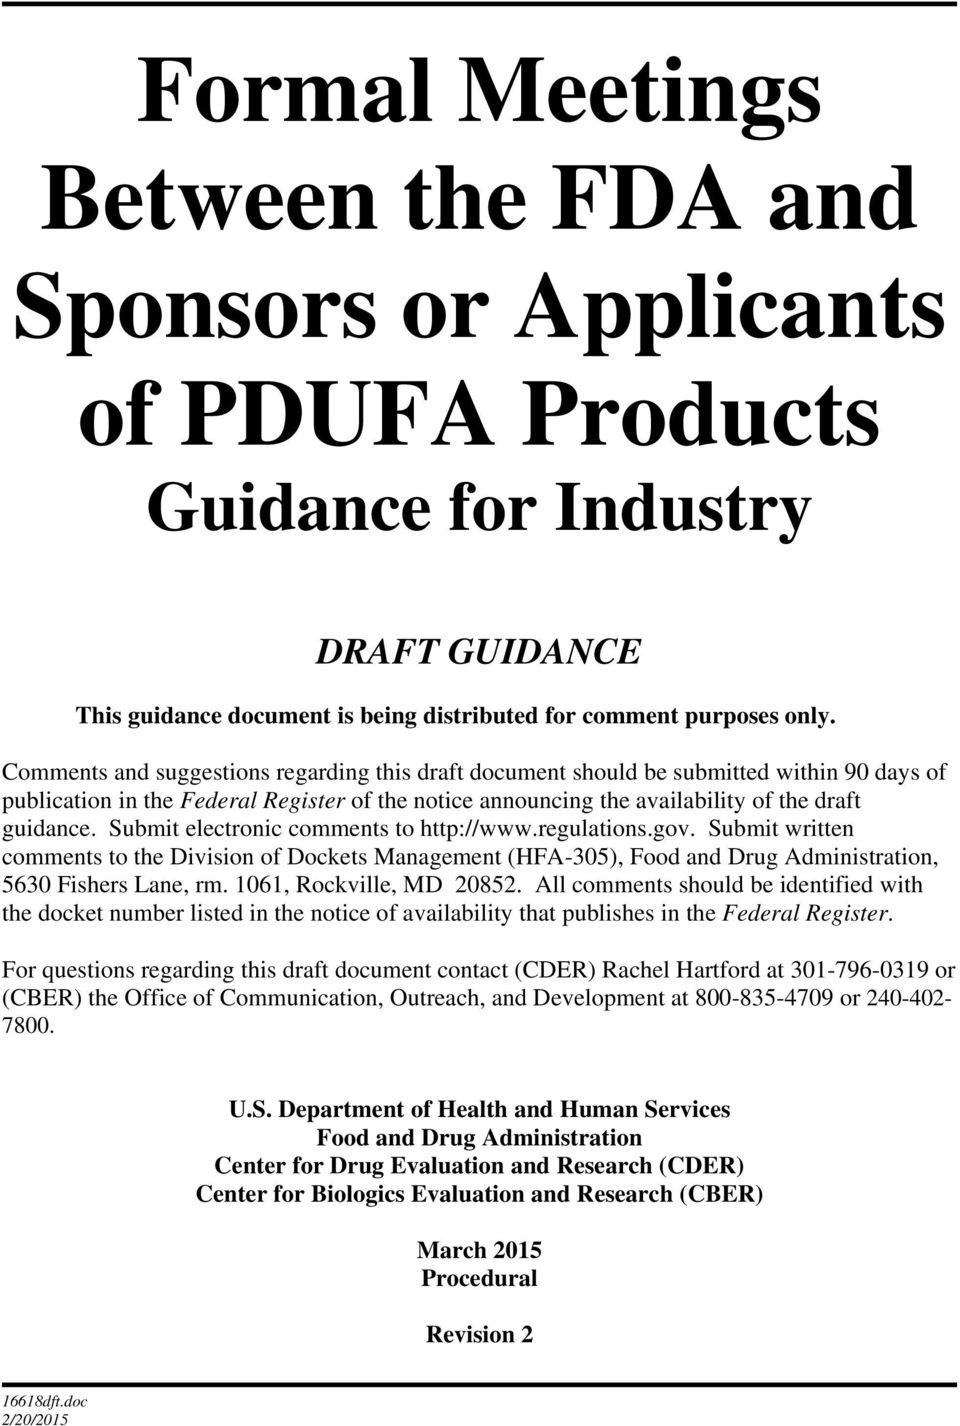 Submit electronic comments to http://www.regulations.gov. Submit written comments to the Division of Dockets Management (HFA-305), Food and Drug Administration, 5630 Fishers Lane, rm.